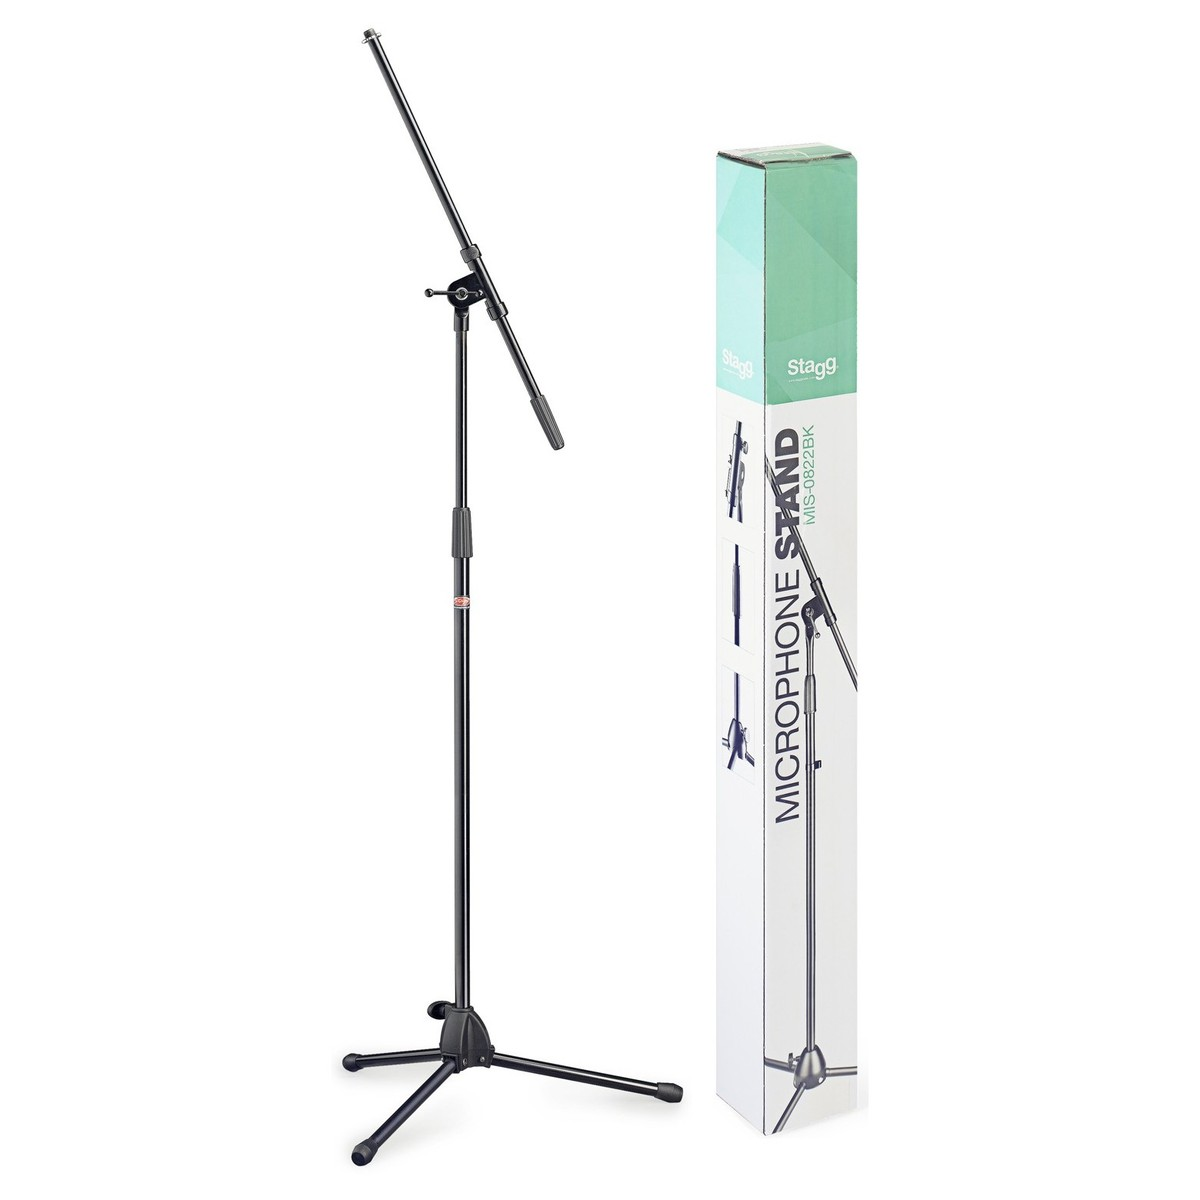 stagg mis 0822bk microphone boom stand free shipping. Black Bedroom Furniture Sets. Home Design Ideas